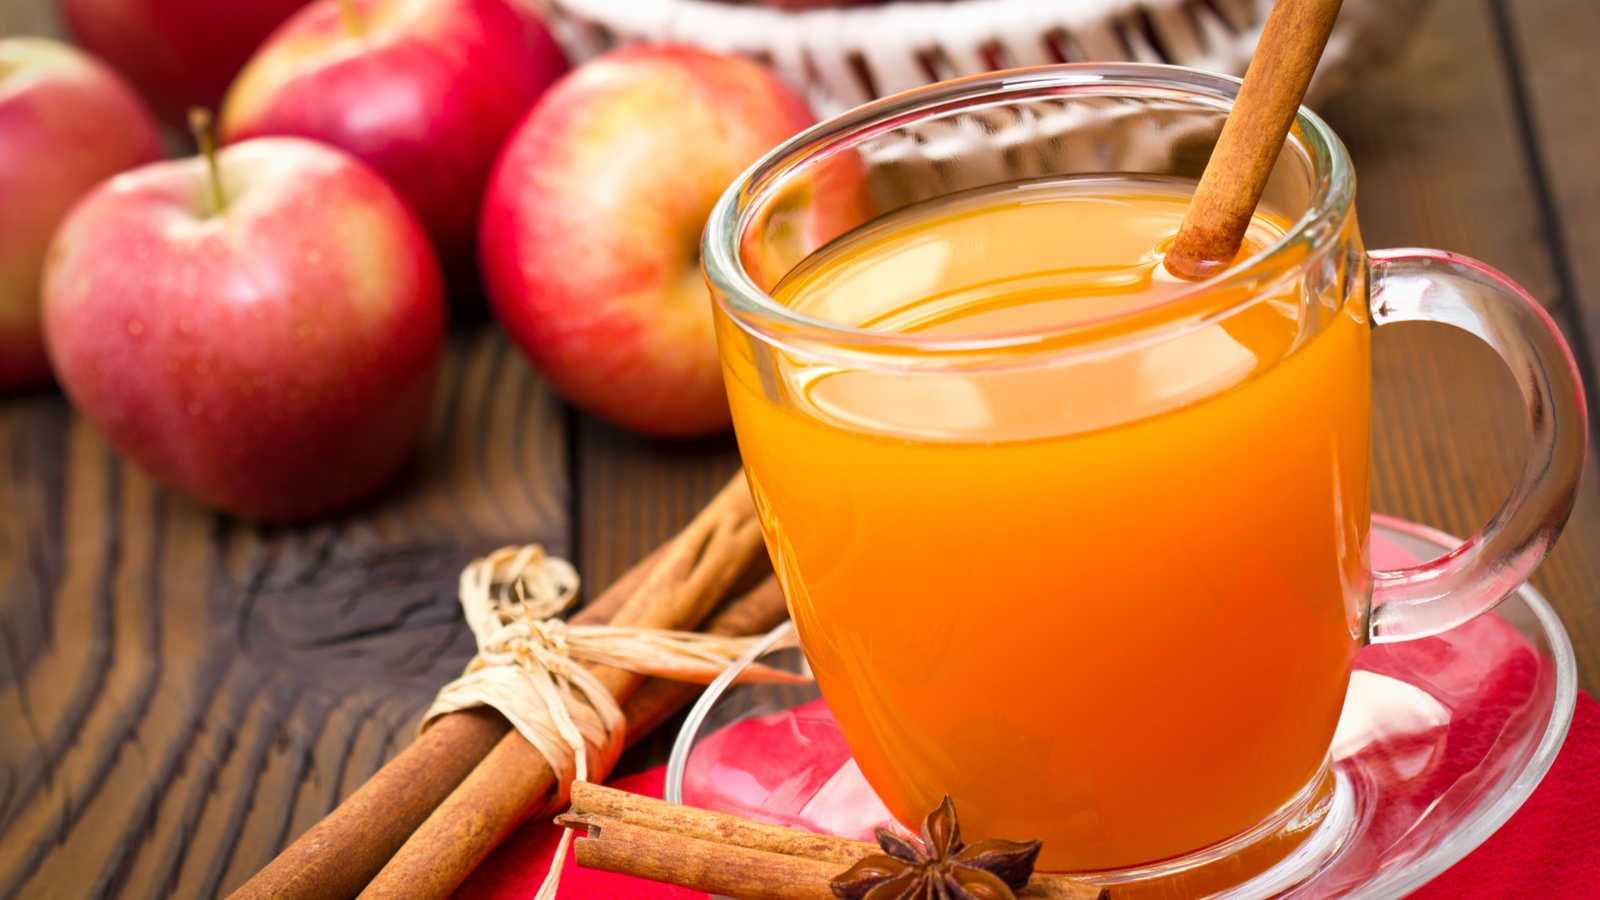 delicious mug of spiced apple cider surrounded by apples on a table